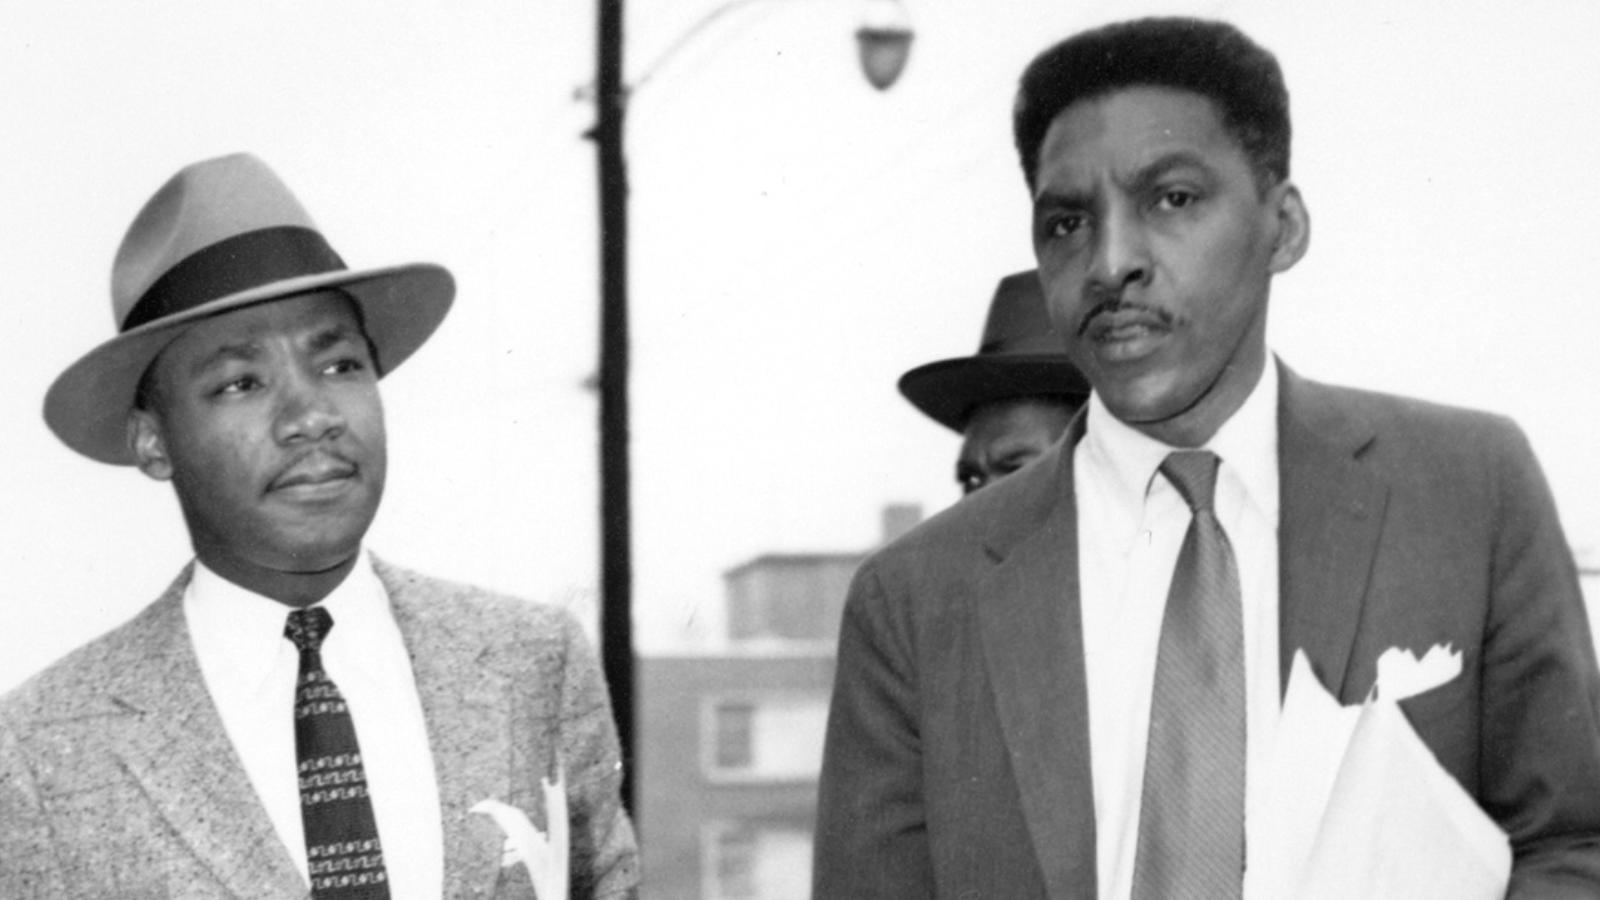 Bayard Rustin with Martin Luther King by a staircase.